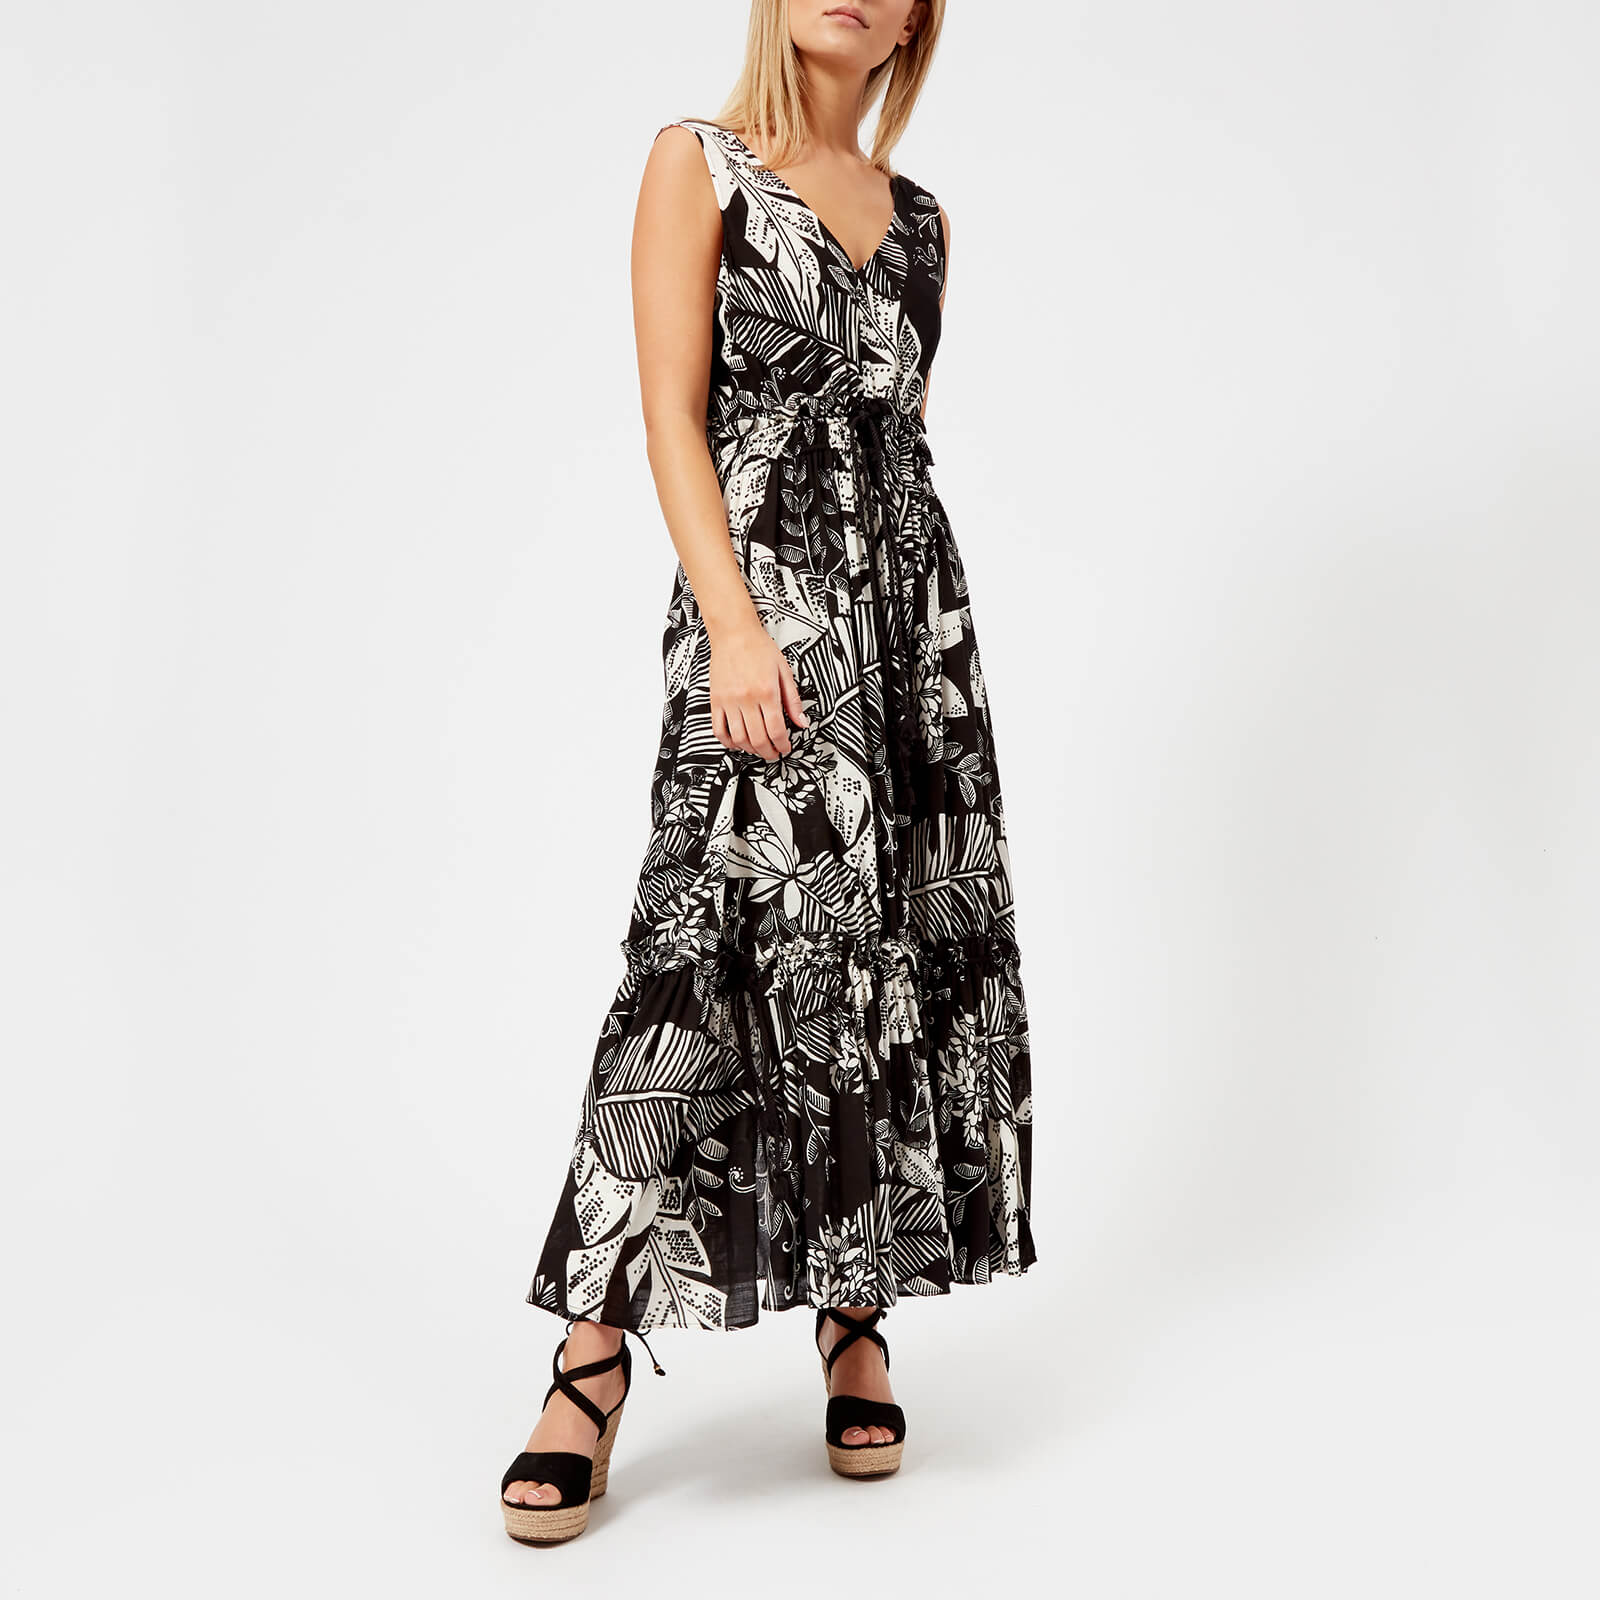 a7354cd167 See By Chloé Women's Palm Print Maxi Dress - Black/White